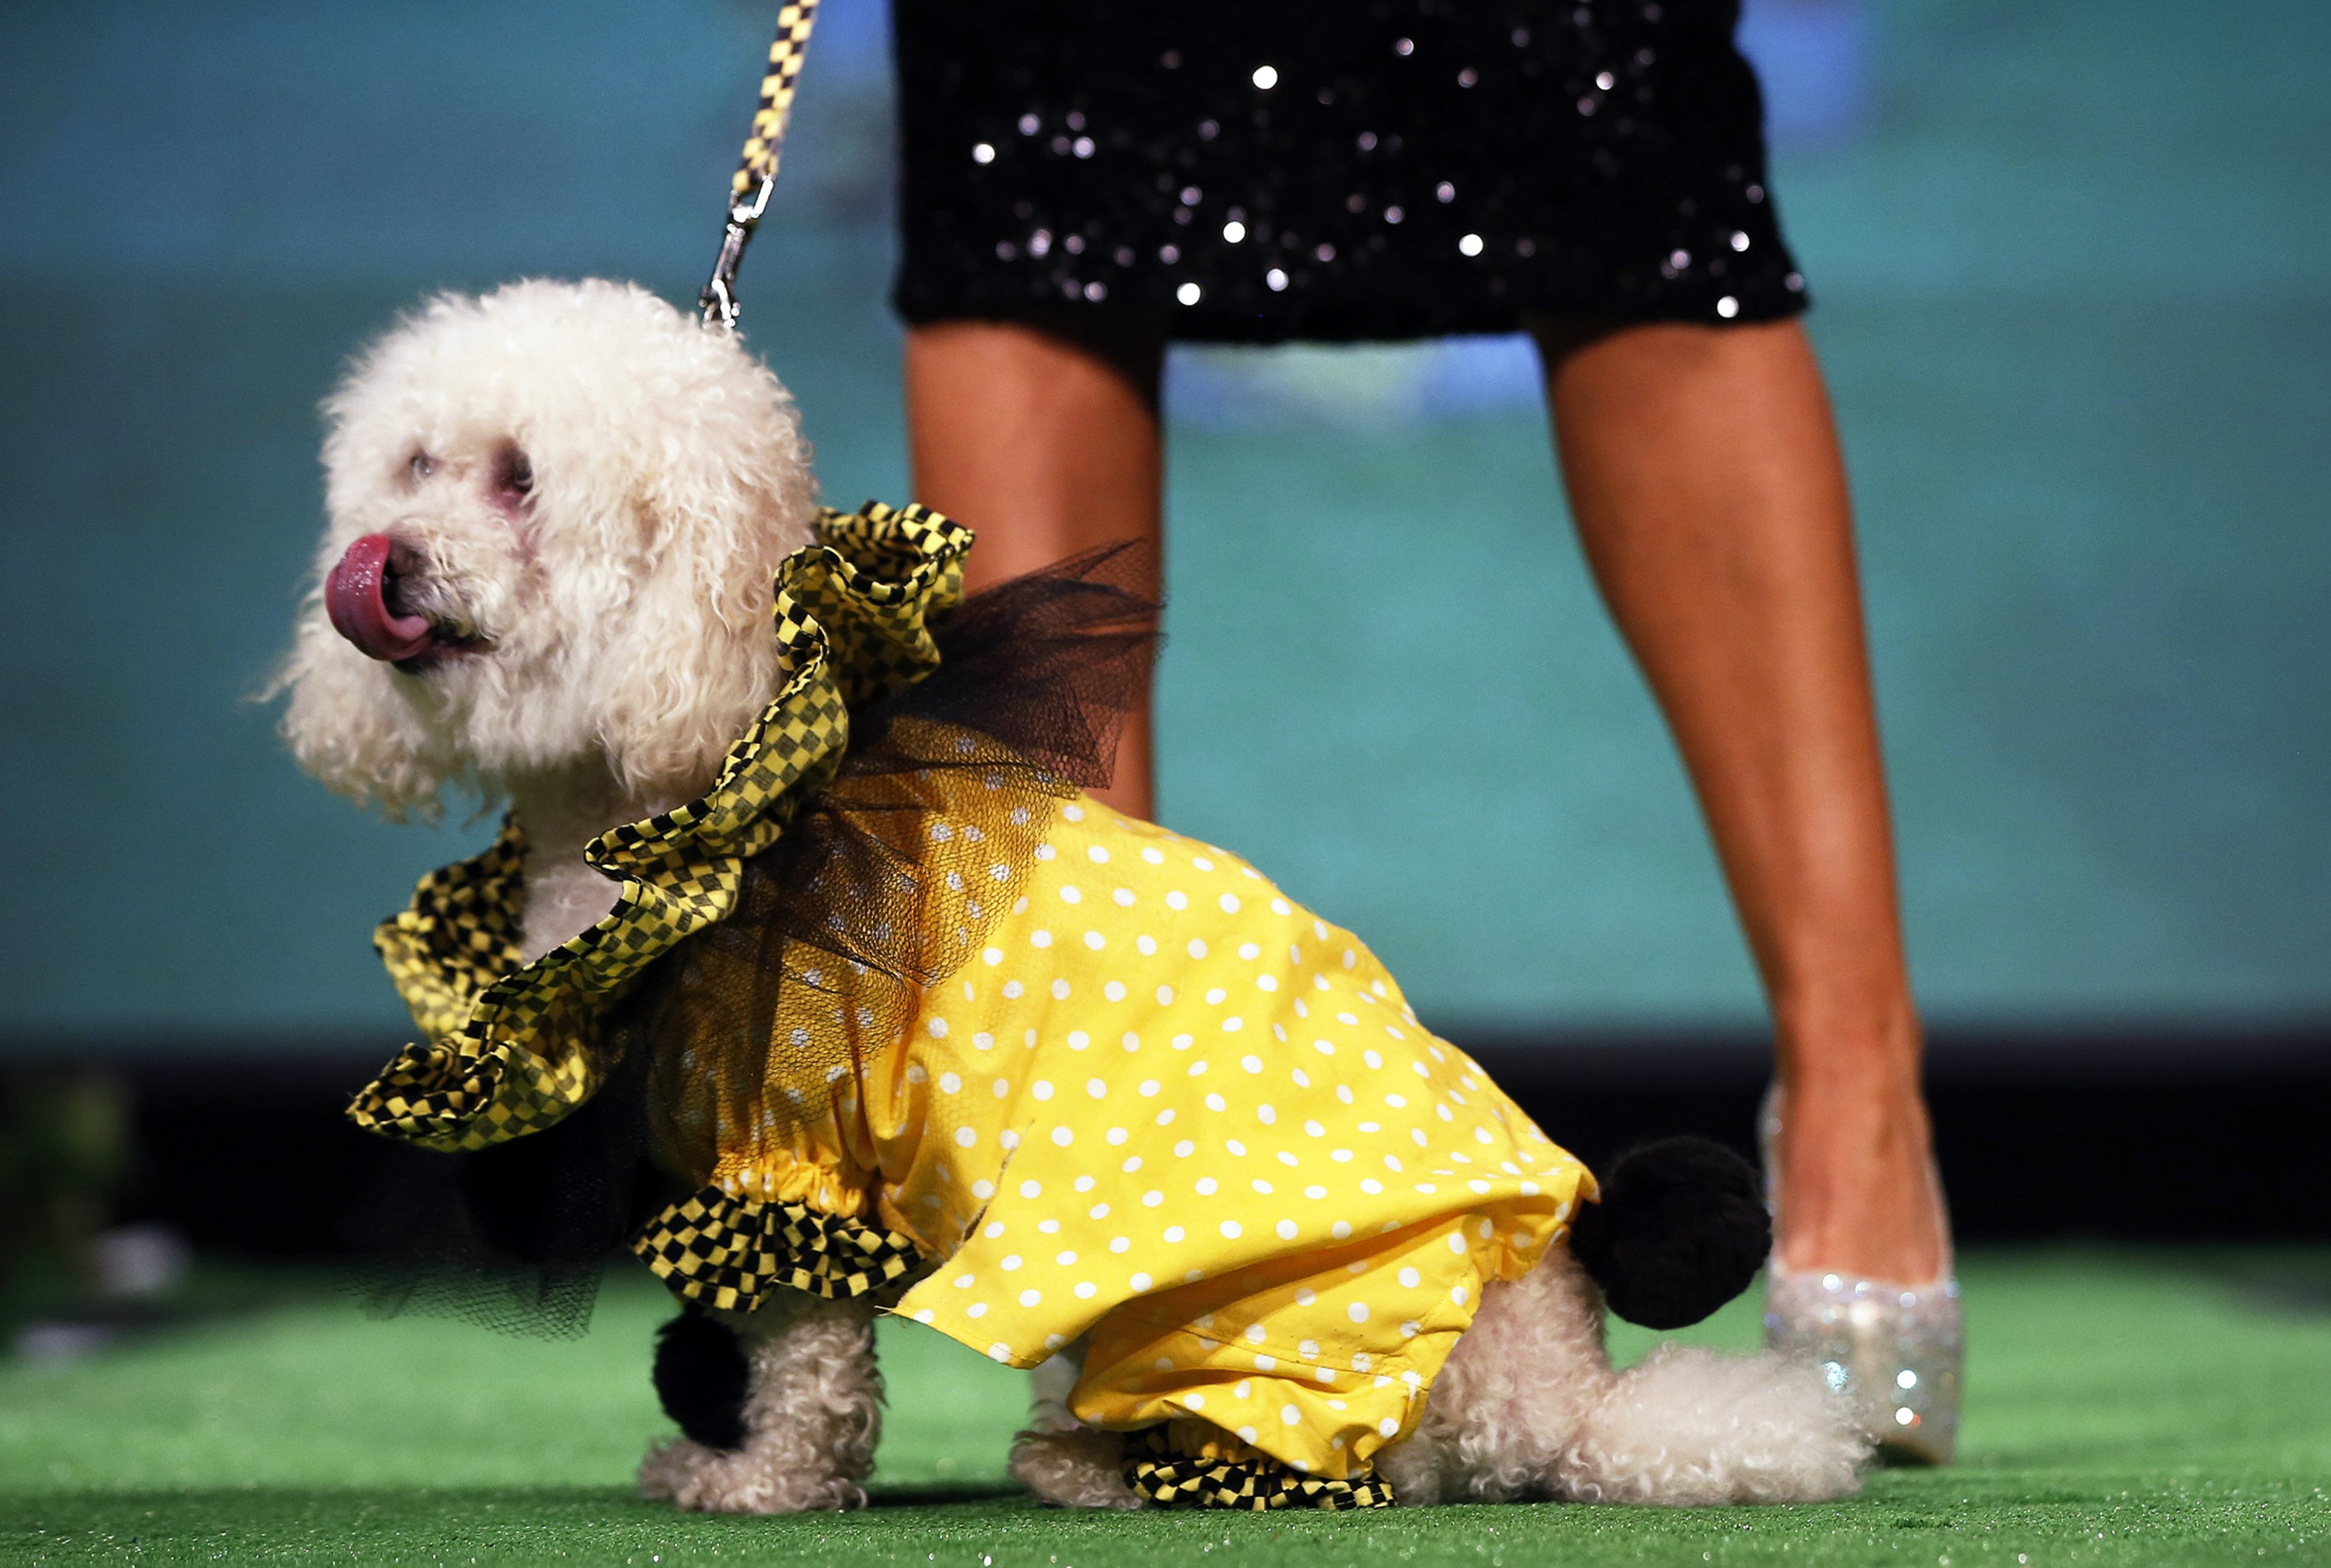 Milo a Poodle and Pomeranian breed mix, sits on the runway of the New Yorkie Runway Doggie Fashion Show in New York. ? Reuters Photo